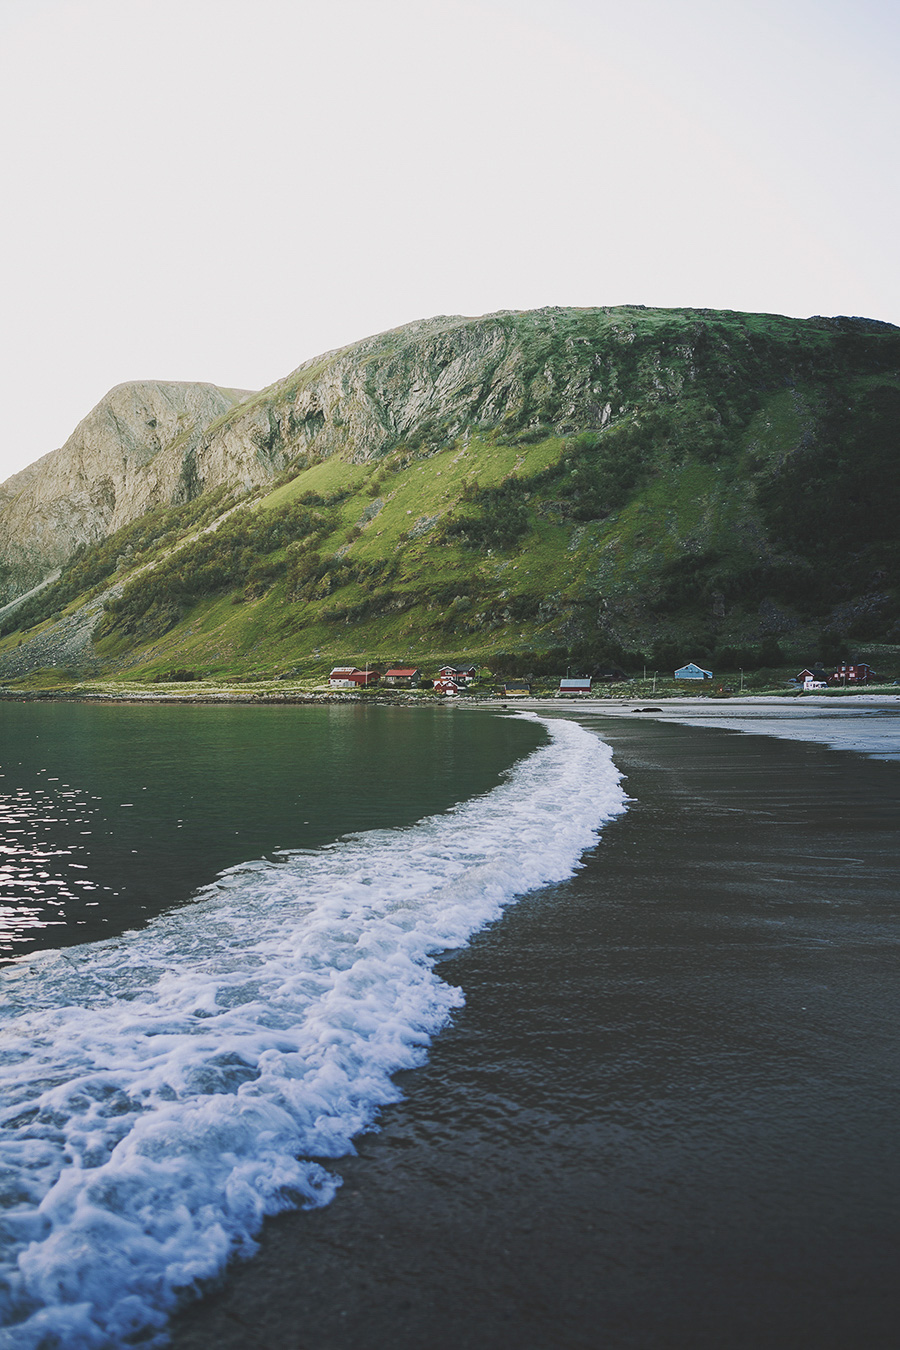 Waves embracing the beach of Grøtfjord